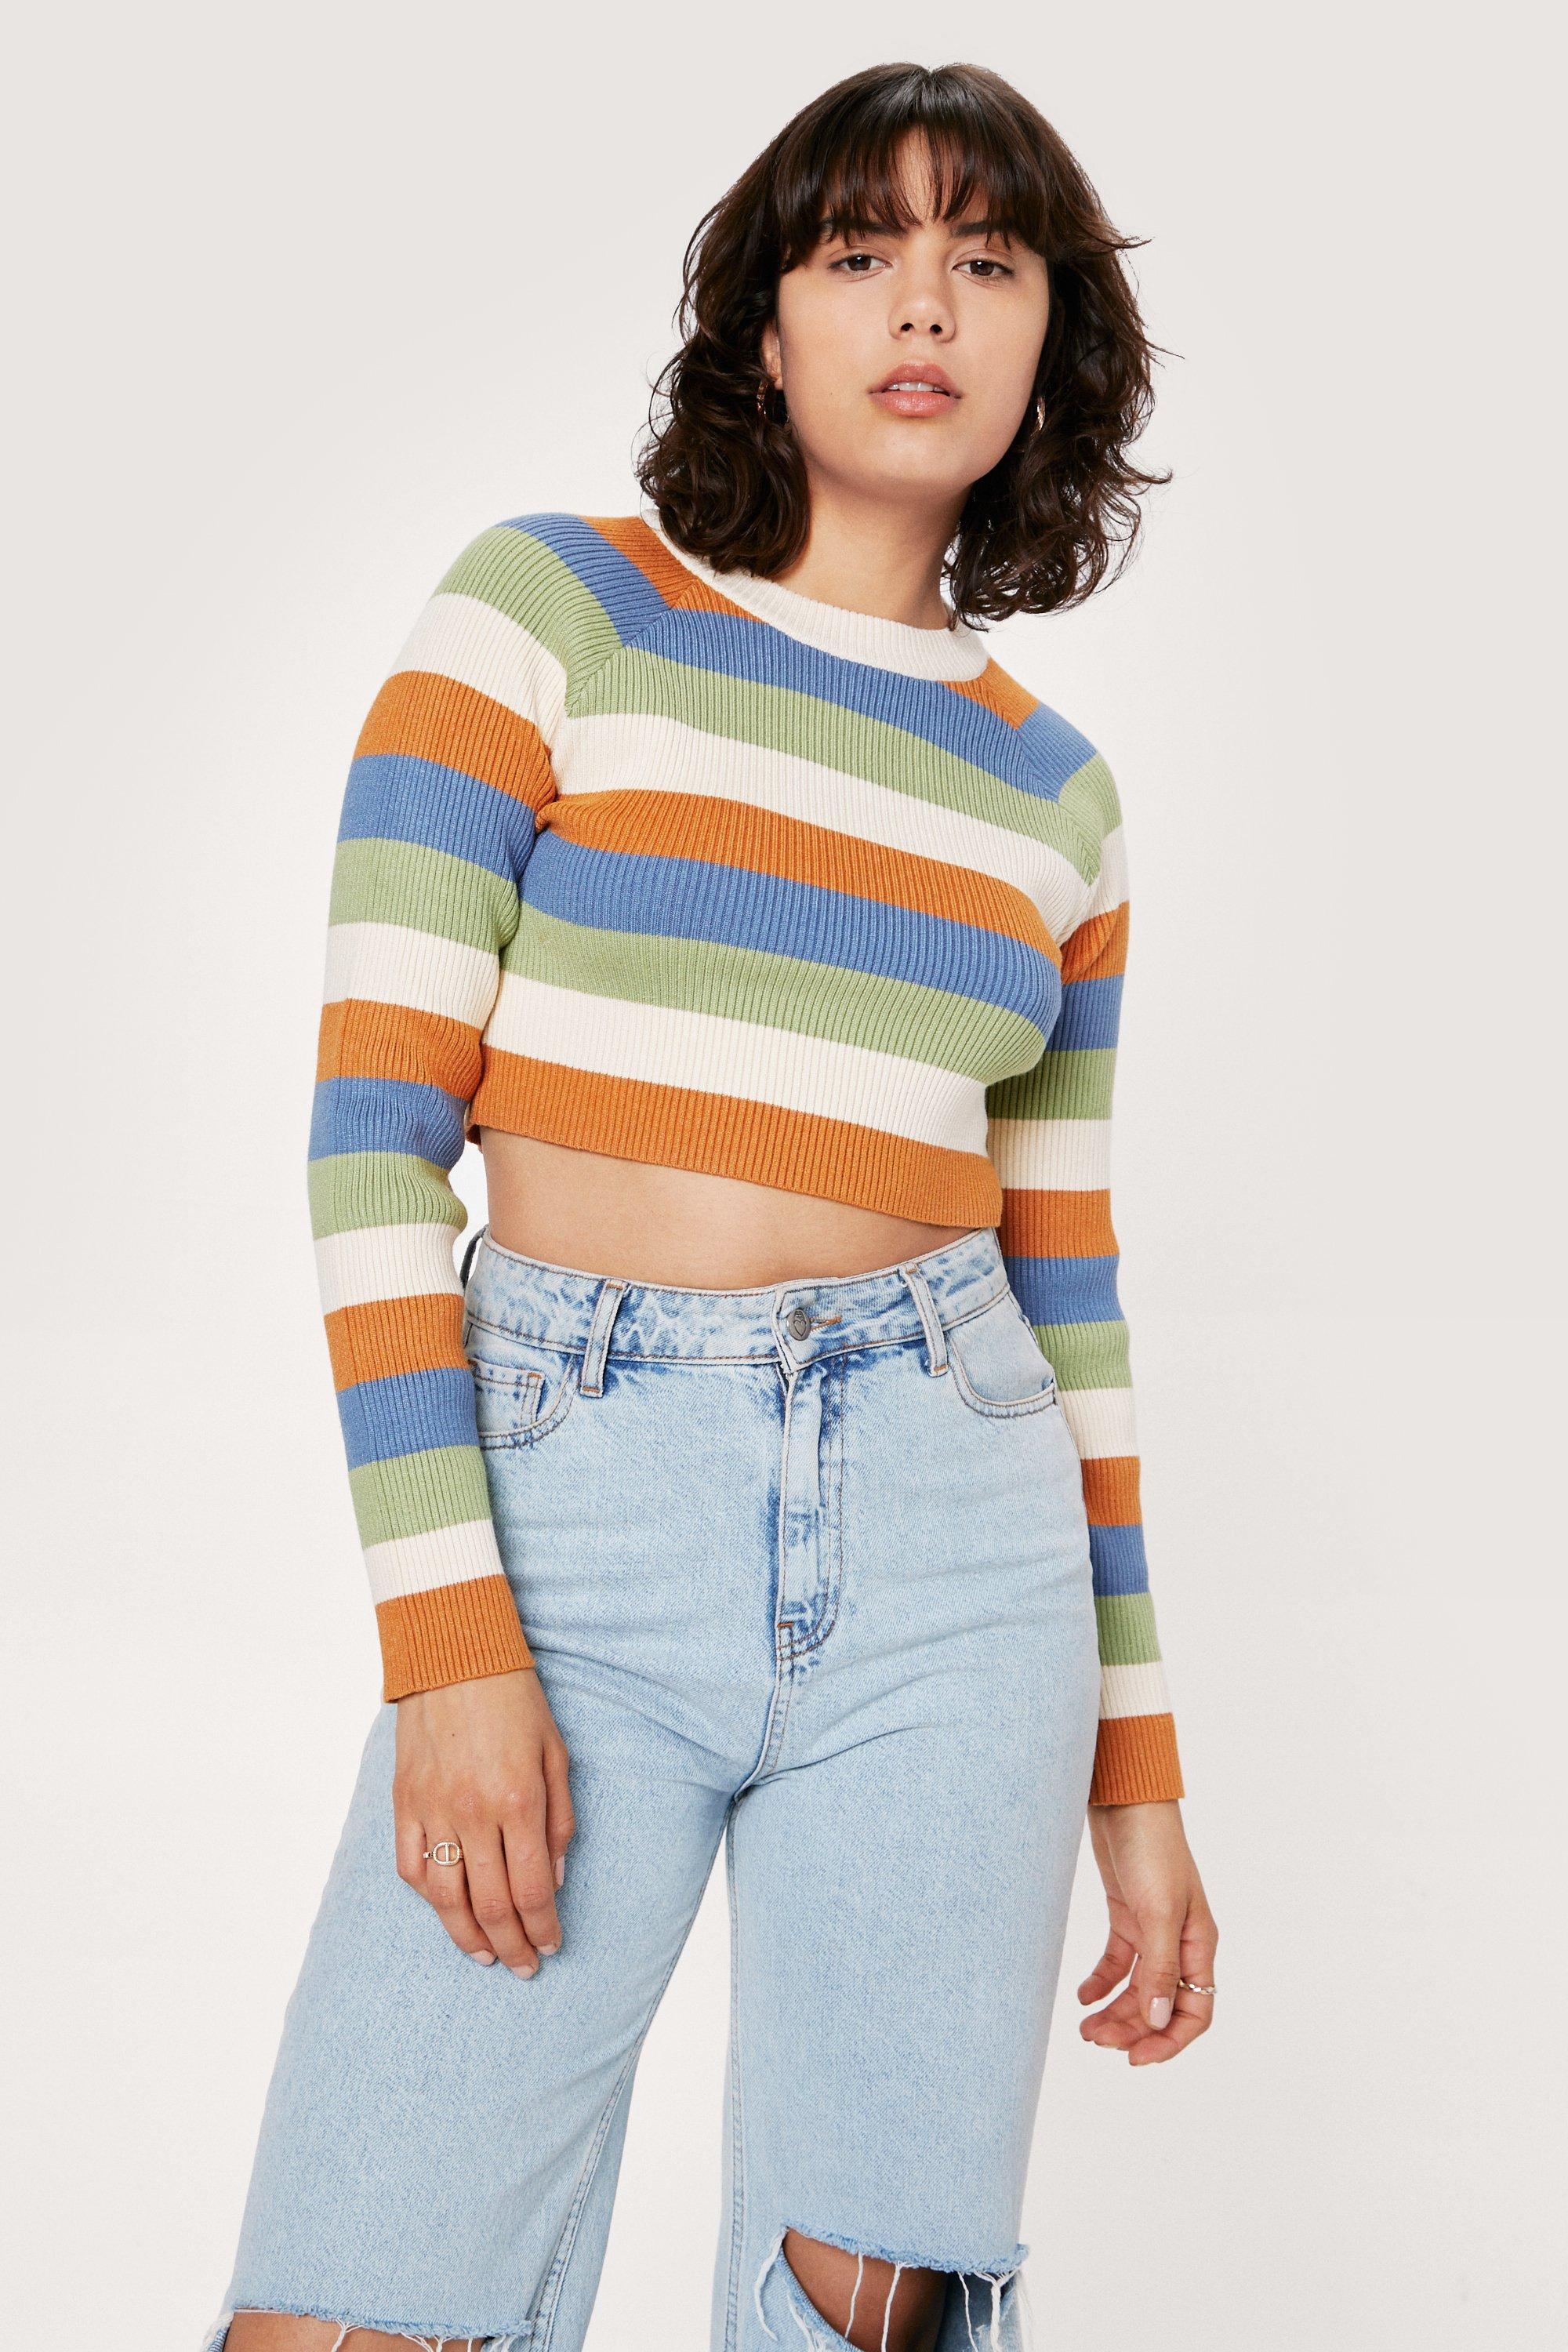 70s Clothes | Hippie Clothes & Outfits Womens Striped Colour Block Knitted Long Sleeve Top - Stone - 12 $19.20 AT vintagedancer.com